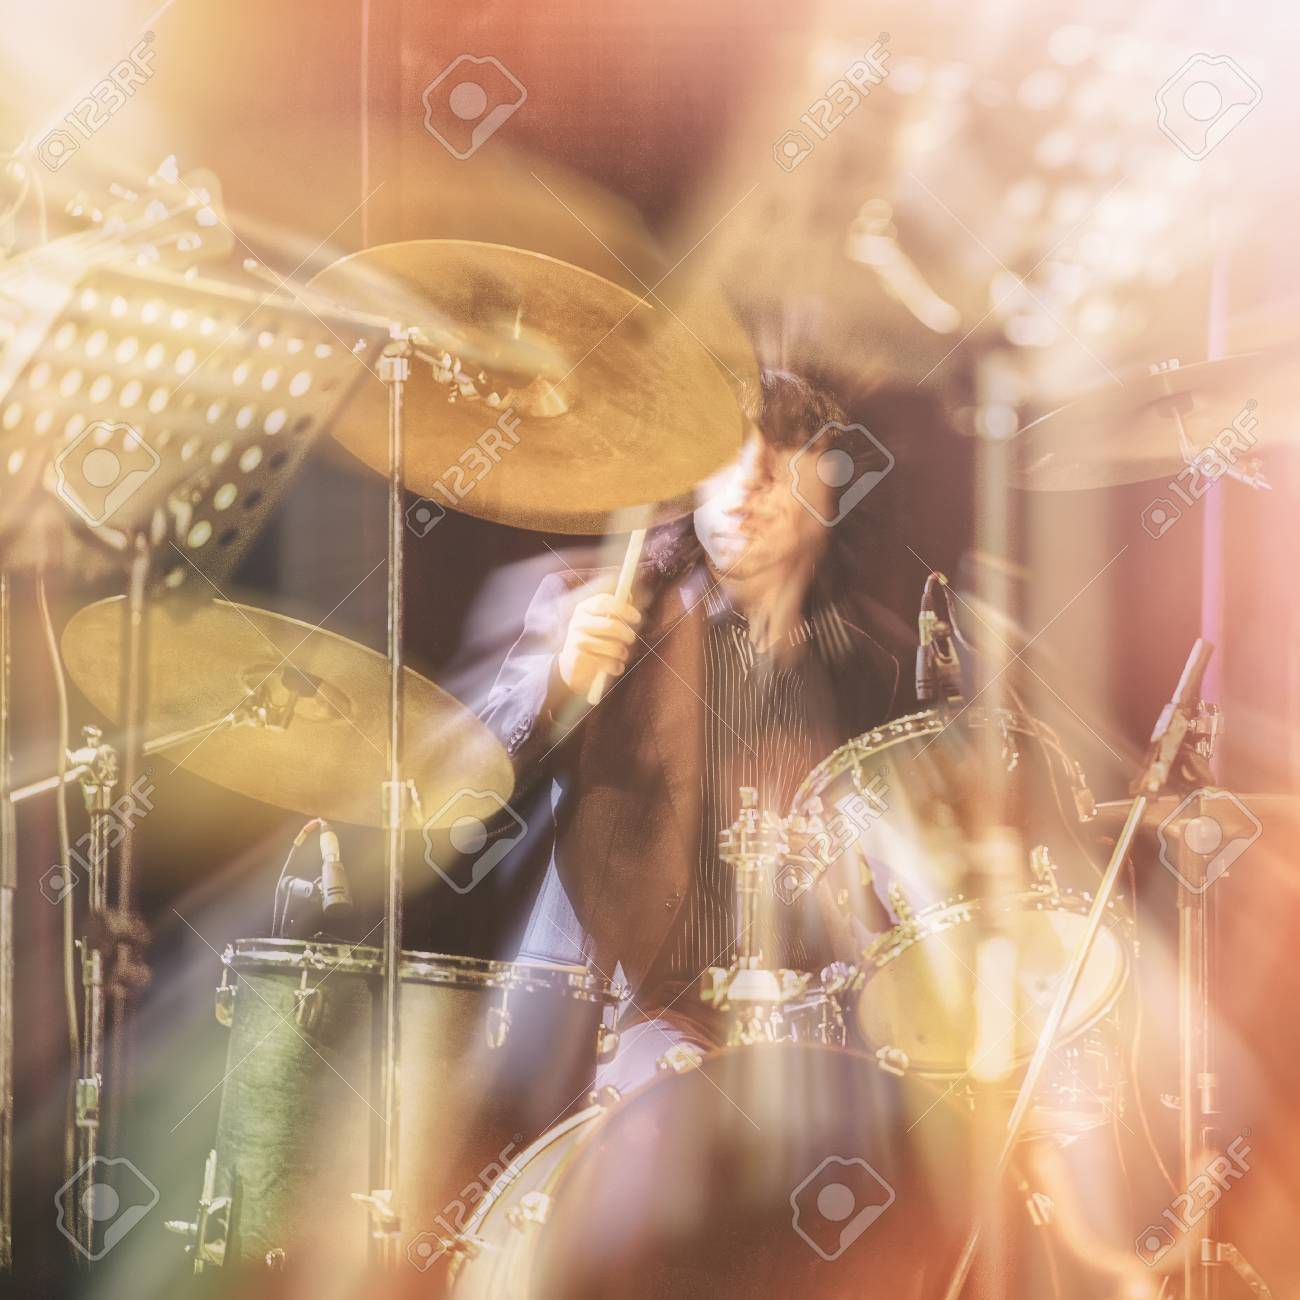 Drum Set Music And Jazz Band Concept A Musician Playing With